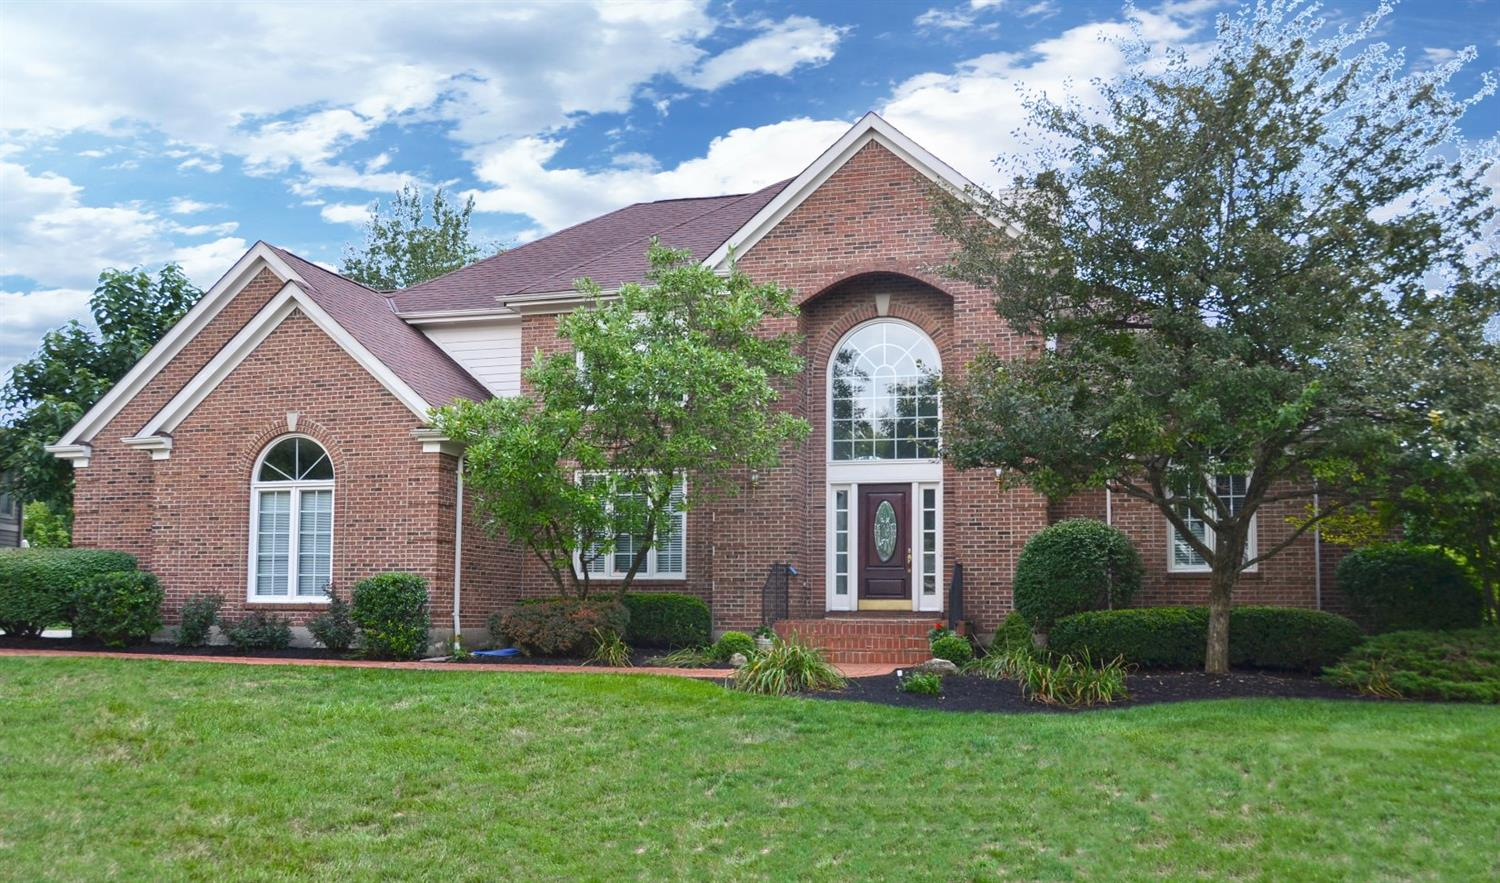 7347 Charter Cup Ln West Chester - West, OH